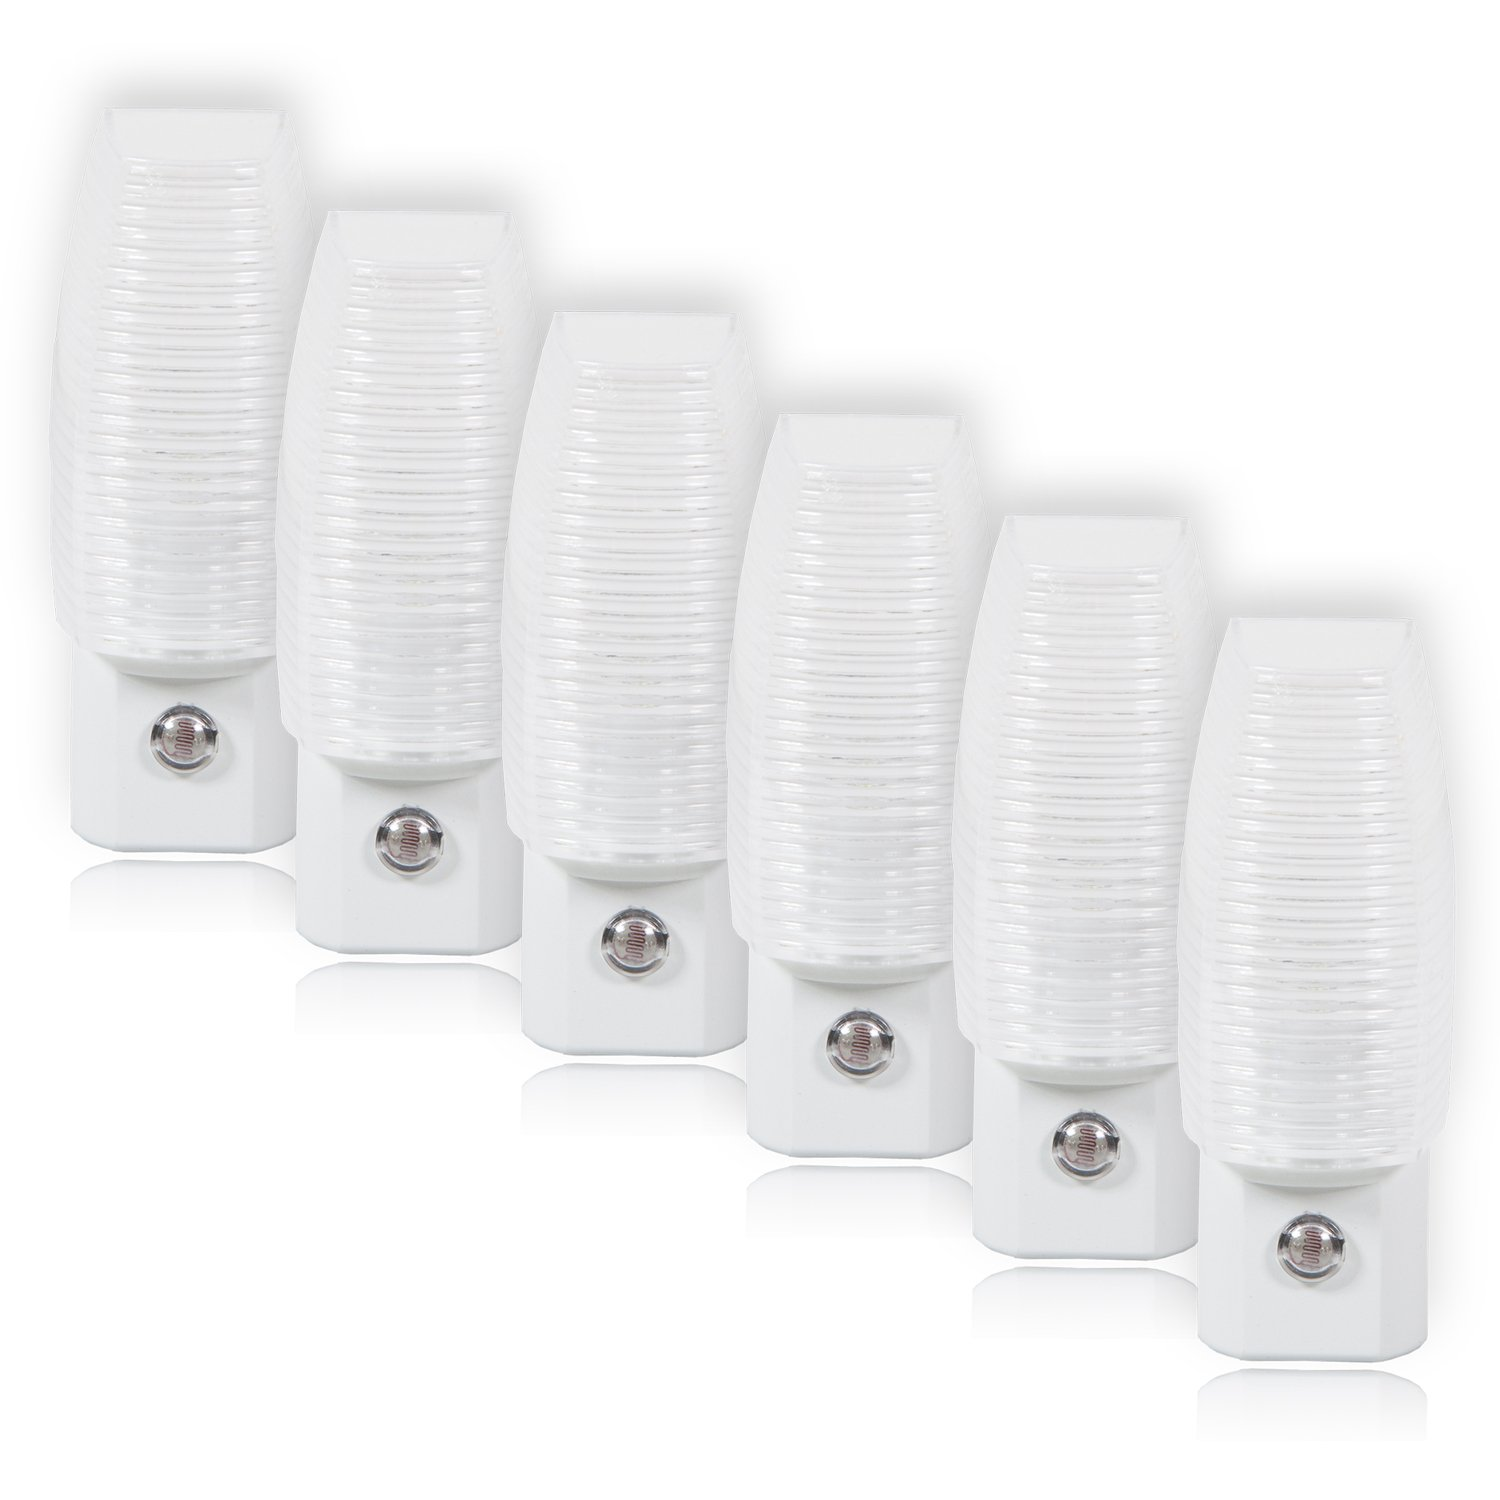 Maxxima MLN-16 LED Plug In Night Light With Auto Dusk to Dawn Sensor, 5 Lumens (6 Pack) by Maxxima